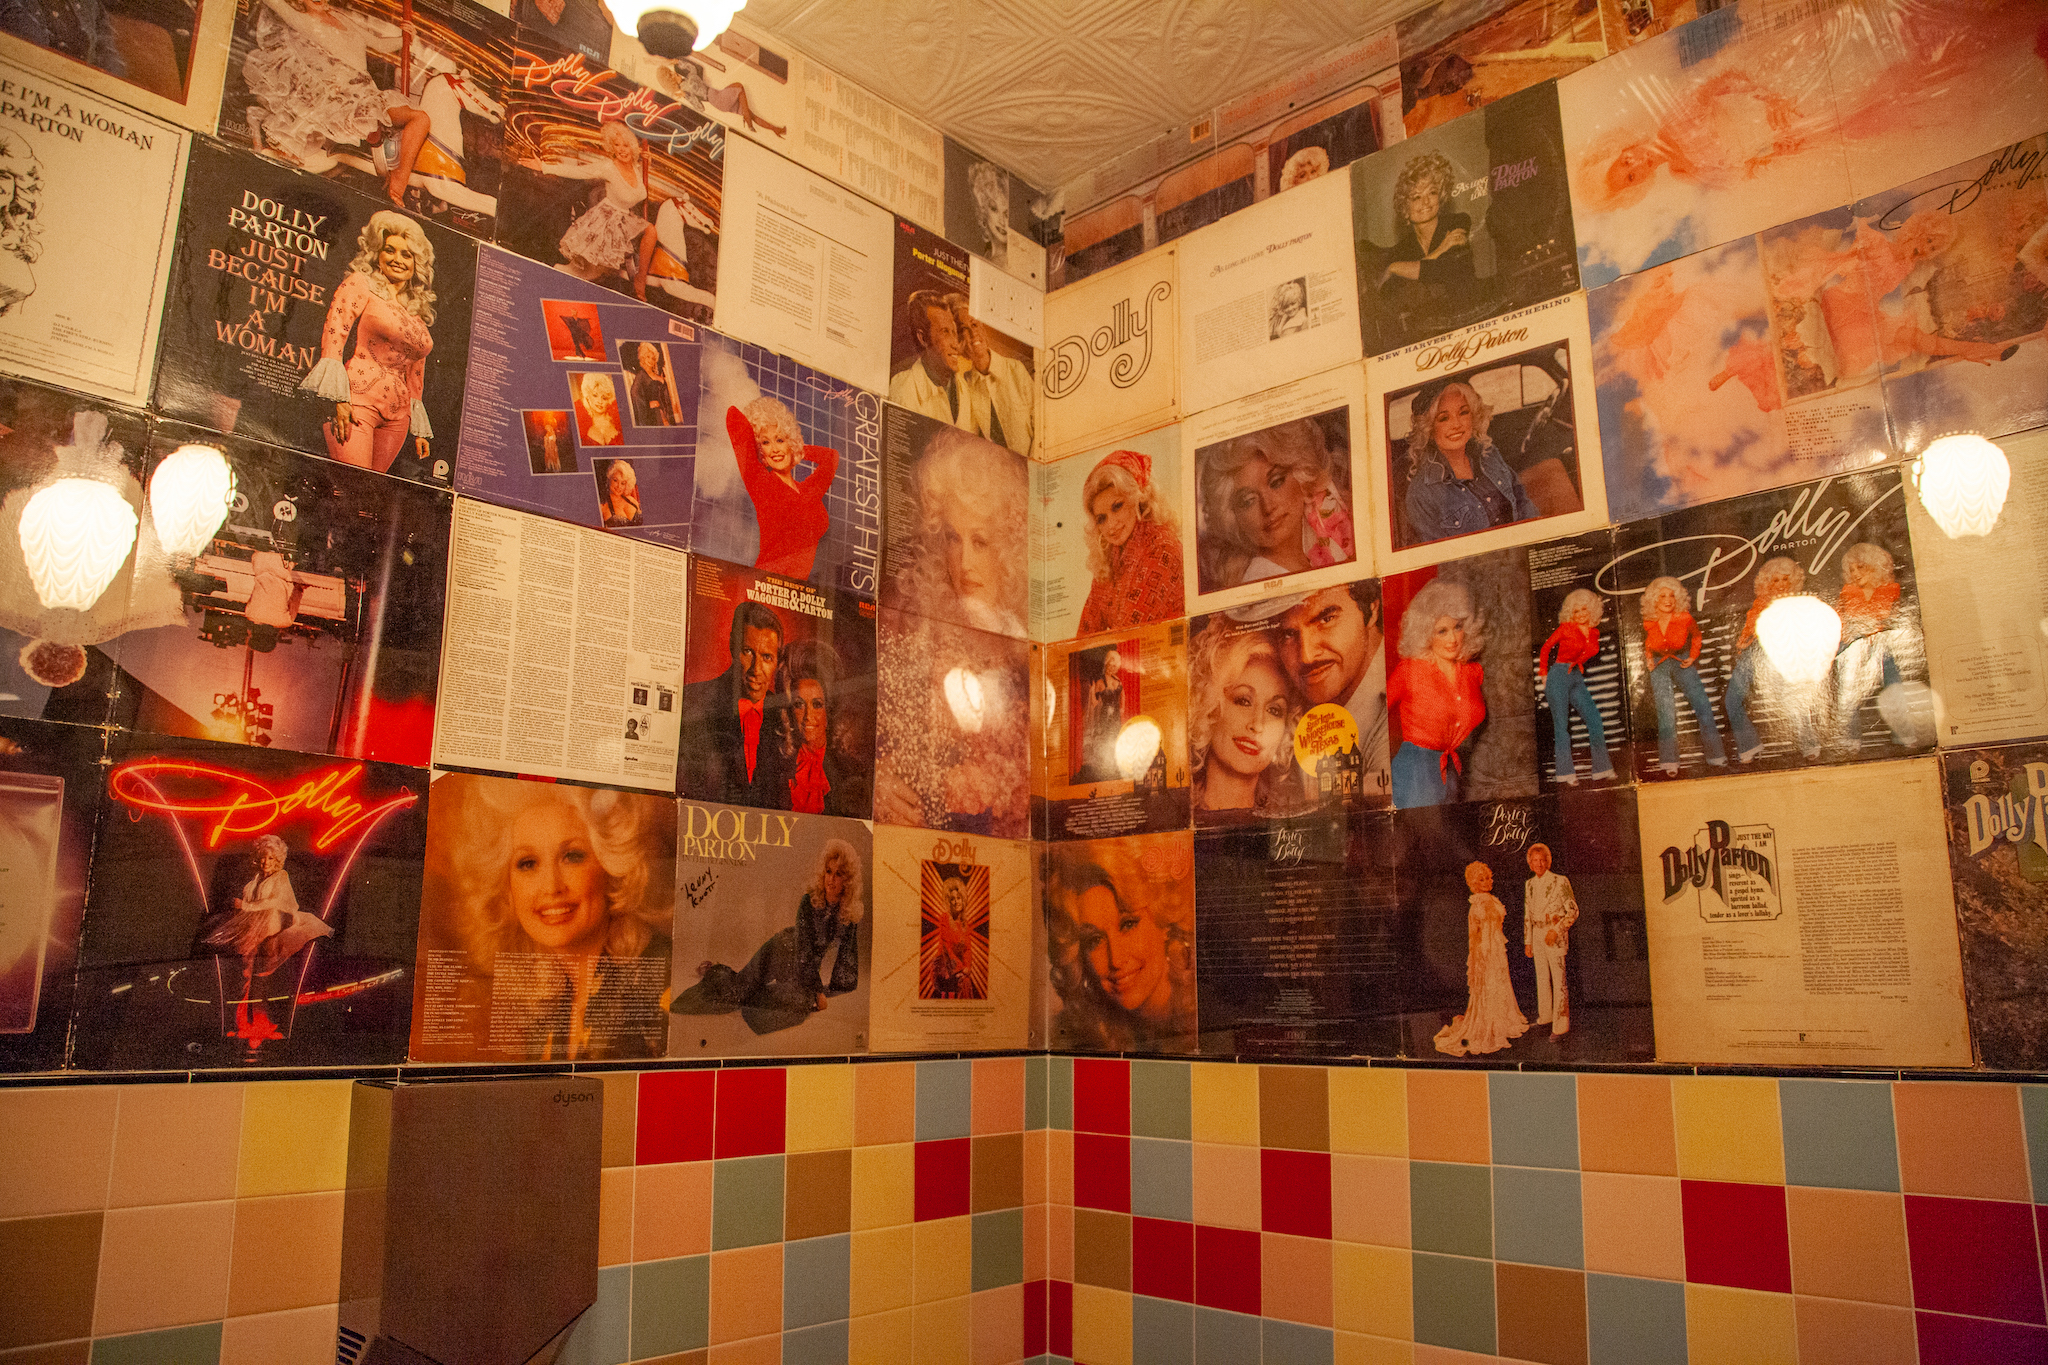 New Brooklyn dive bar Dolly's opens with a touch of Dolly Parton